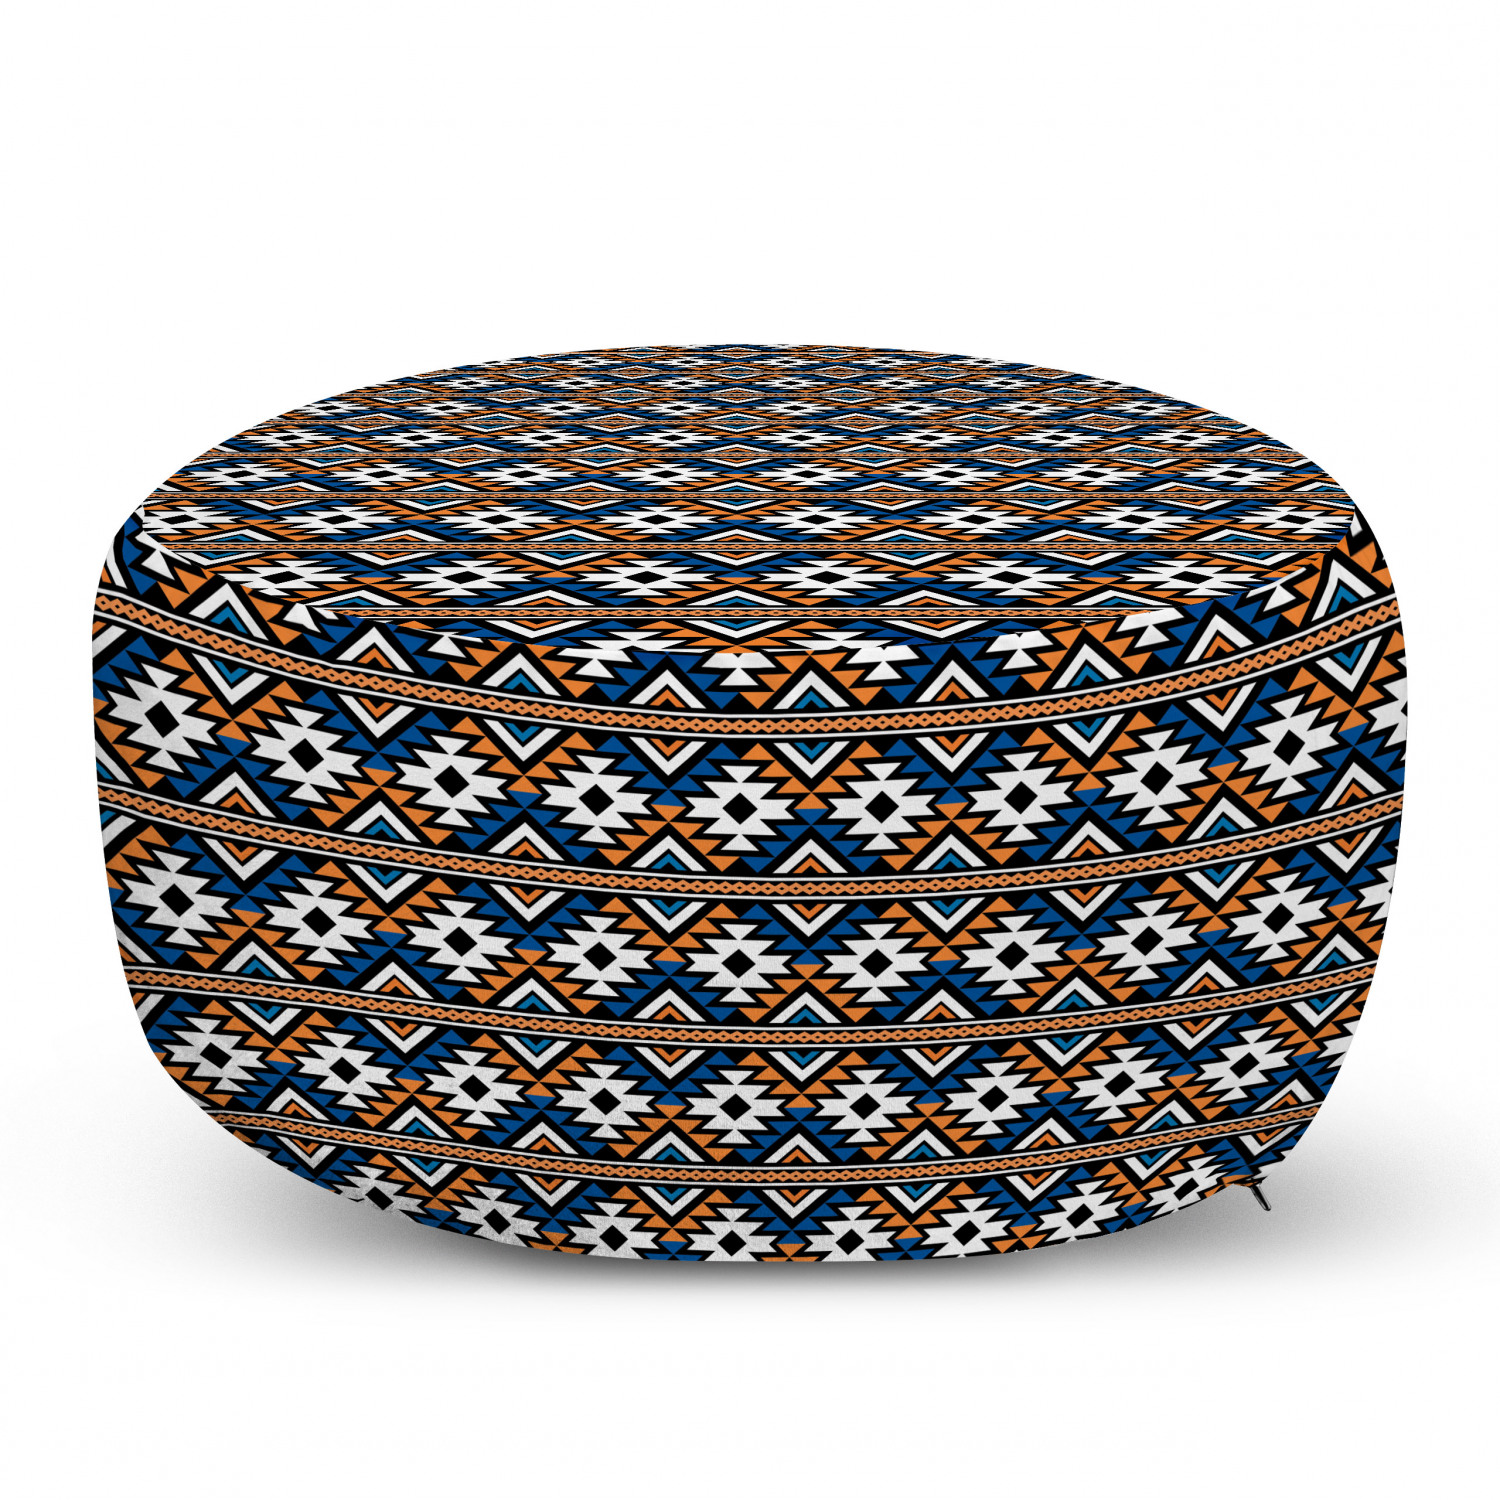 Autumn Leaves Pattern in Earth Tones Cocoa Champagne Ambesonne Leaves Ottoman Pouf Decorative Soft Foot Rest with Removable Cover Living Room and Bedroom